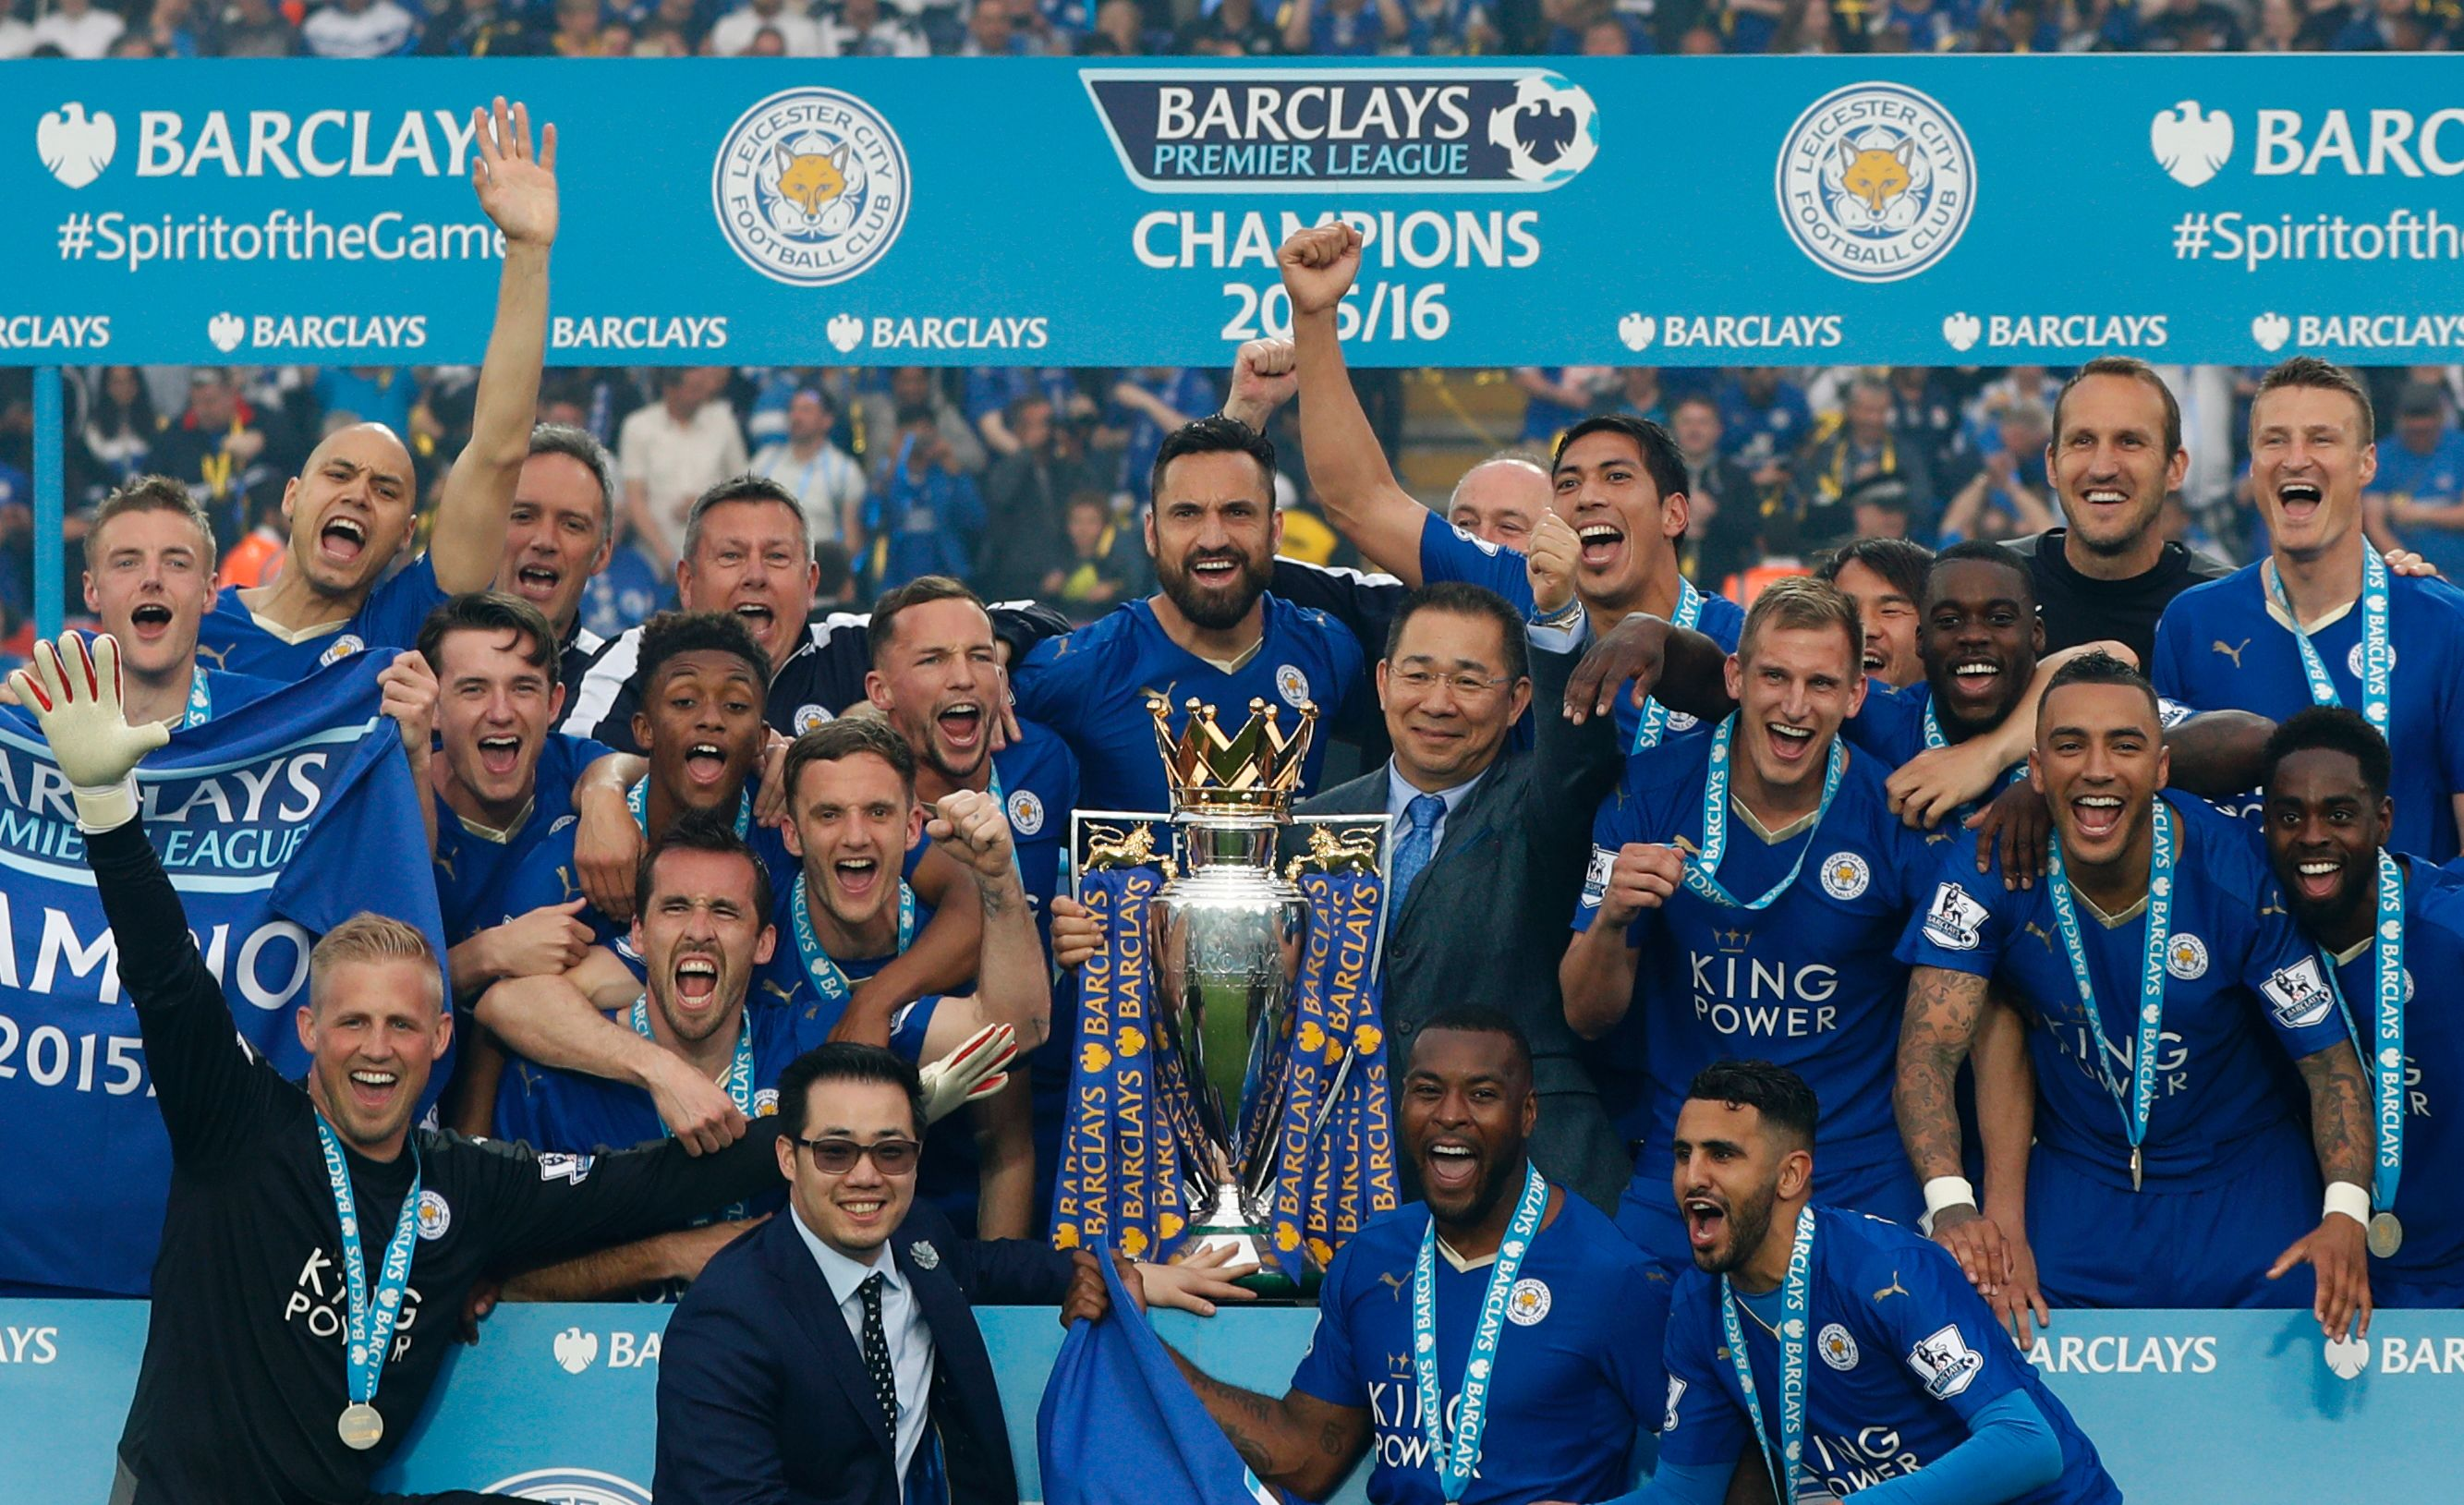 Leicester City players and Leicester City's Thai chairman Vichai Srivaddhanaprabha (C) pose with the Premier league trophy after winning the league and the English Premier League football match between Leicester City and Everton at King Power Stadium in Leicester, central England on May 7, 2016. / AFP / ADRIAN DENNIS / RESTRICTED TO EDITORIAL USE. No use with unauthorized audio, video, data, fixture lists, club/league logos or 'live' services. Online in-match use limited to 75 images, no video emulation. No use in betting, games or single club/league/player publications.  /         (Photo credit should read ADRIAN DENNIS/AFP/Getty Images)